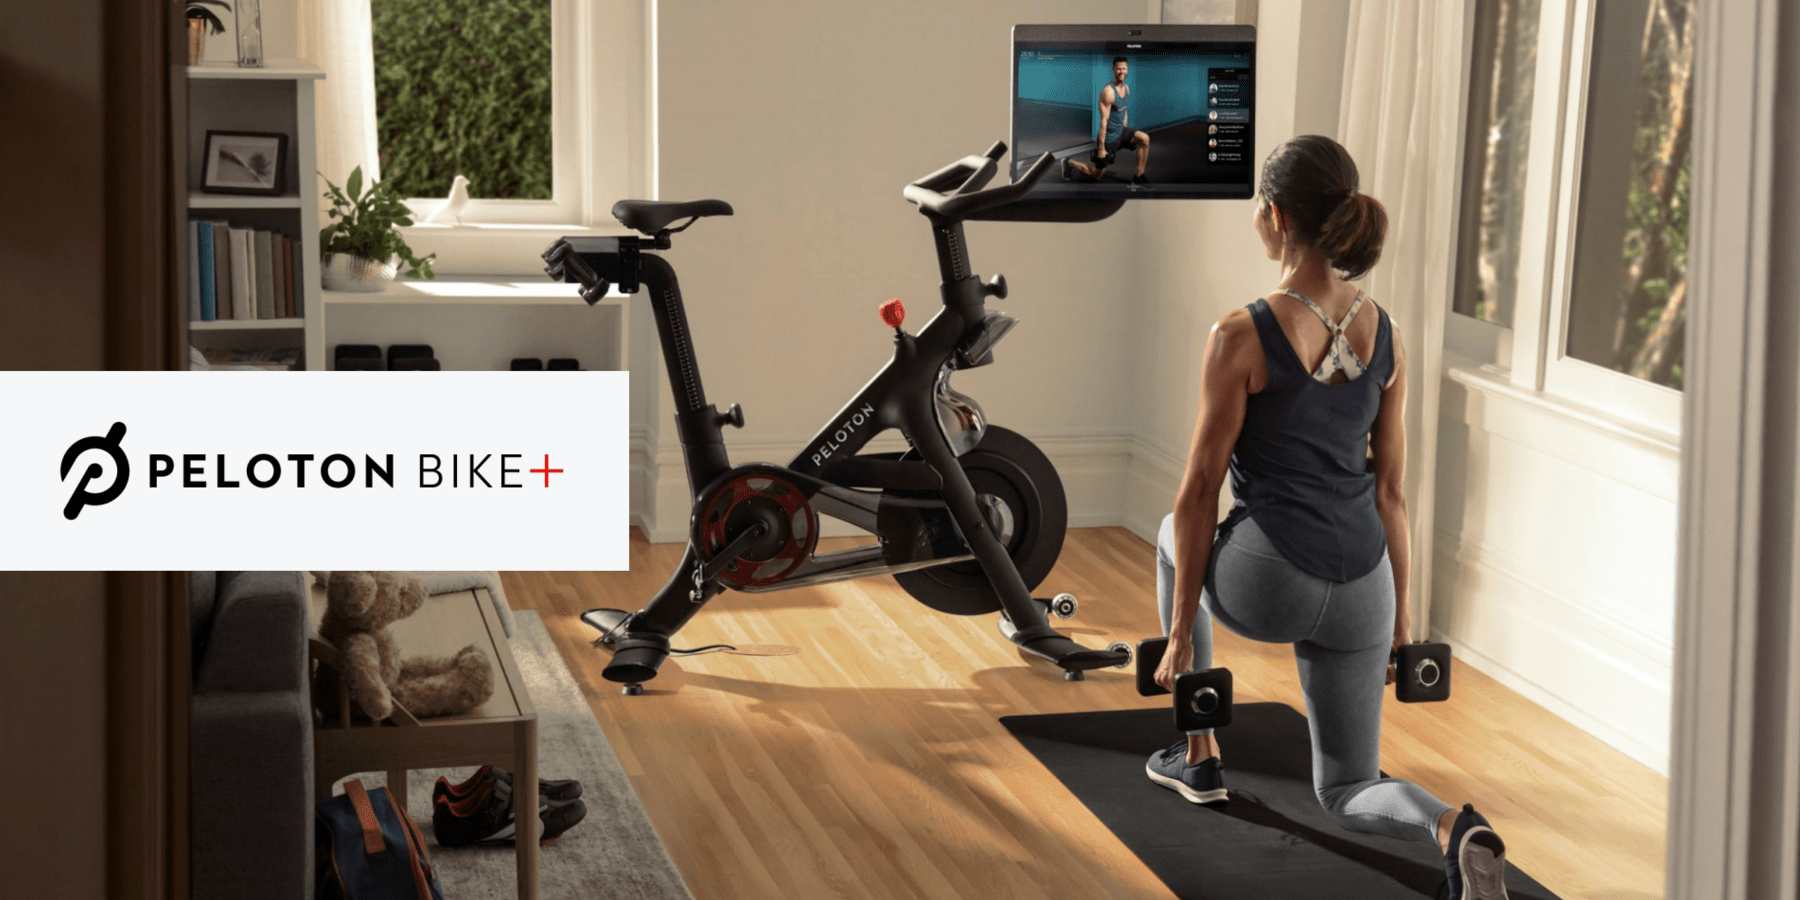 Connected Fitness: Apple greift Peloton an